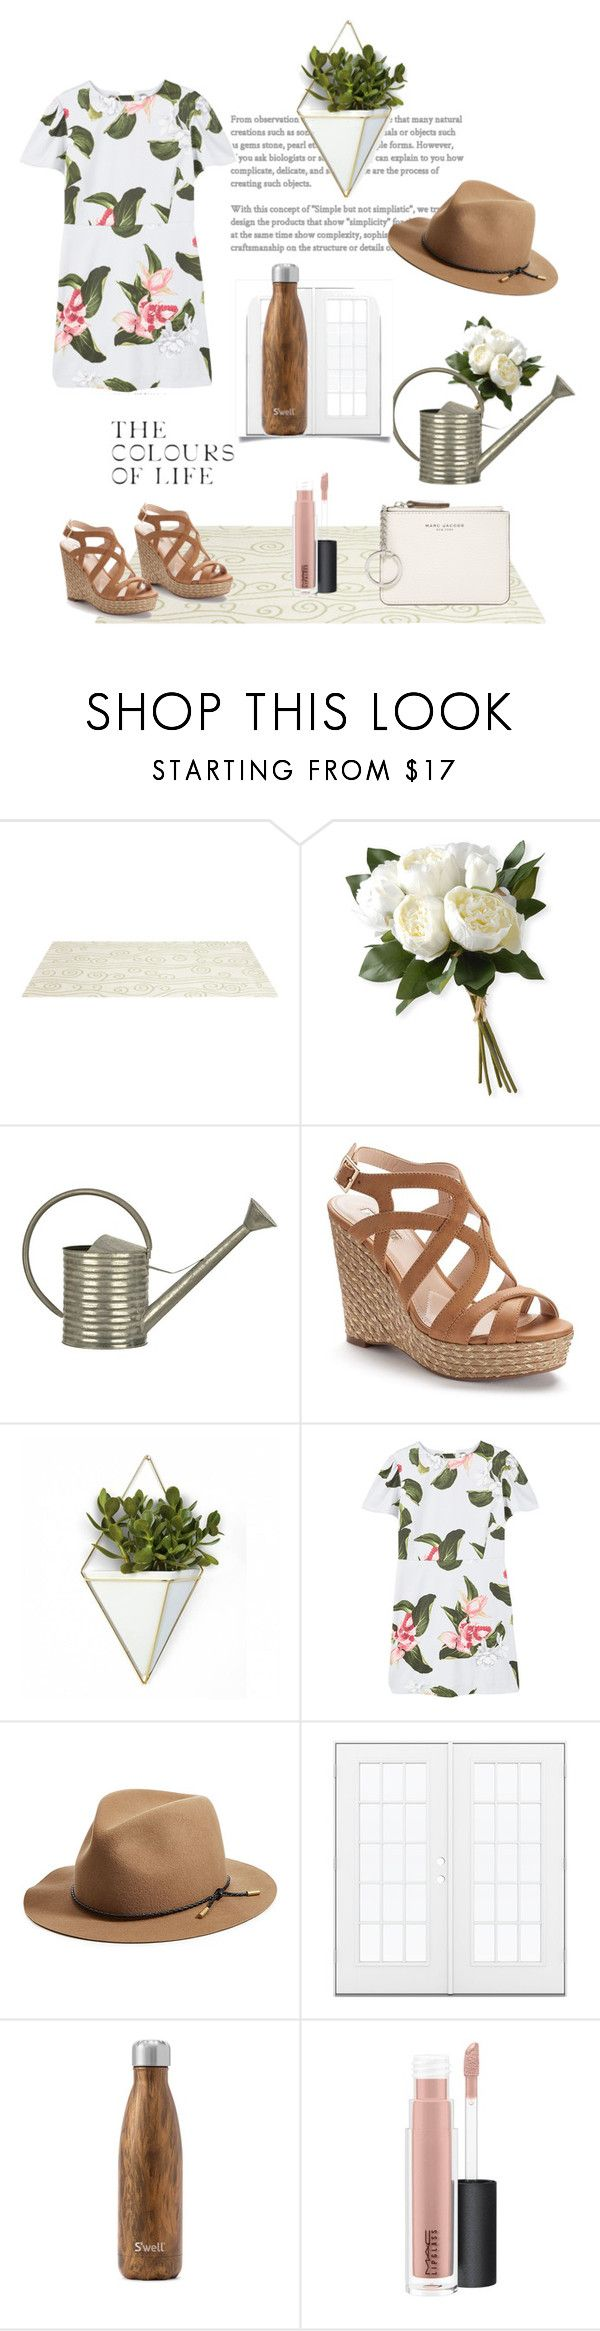 """Untitled #28"" by sunlight-crystal ❤ liked on Polyvore featuring Somerset Bay, National Tree Company, Jennifer Lopez, Umbra, MANGO, rag & bone, West Elm, MAC Cosmetics and Marc Jacobs"